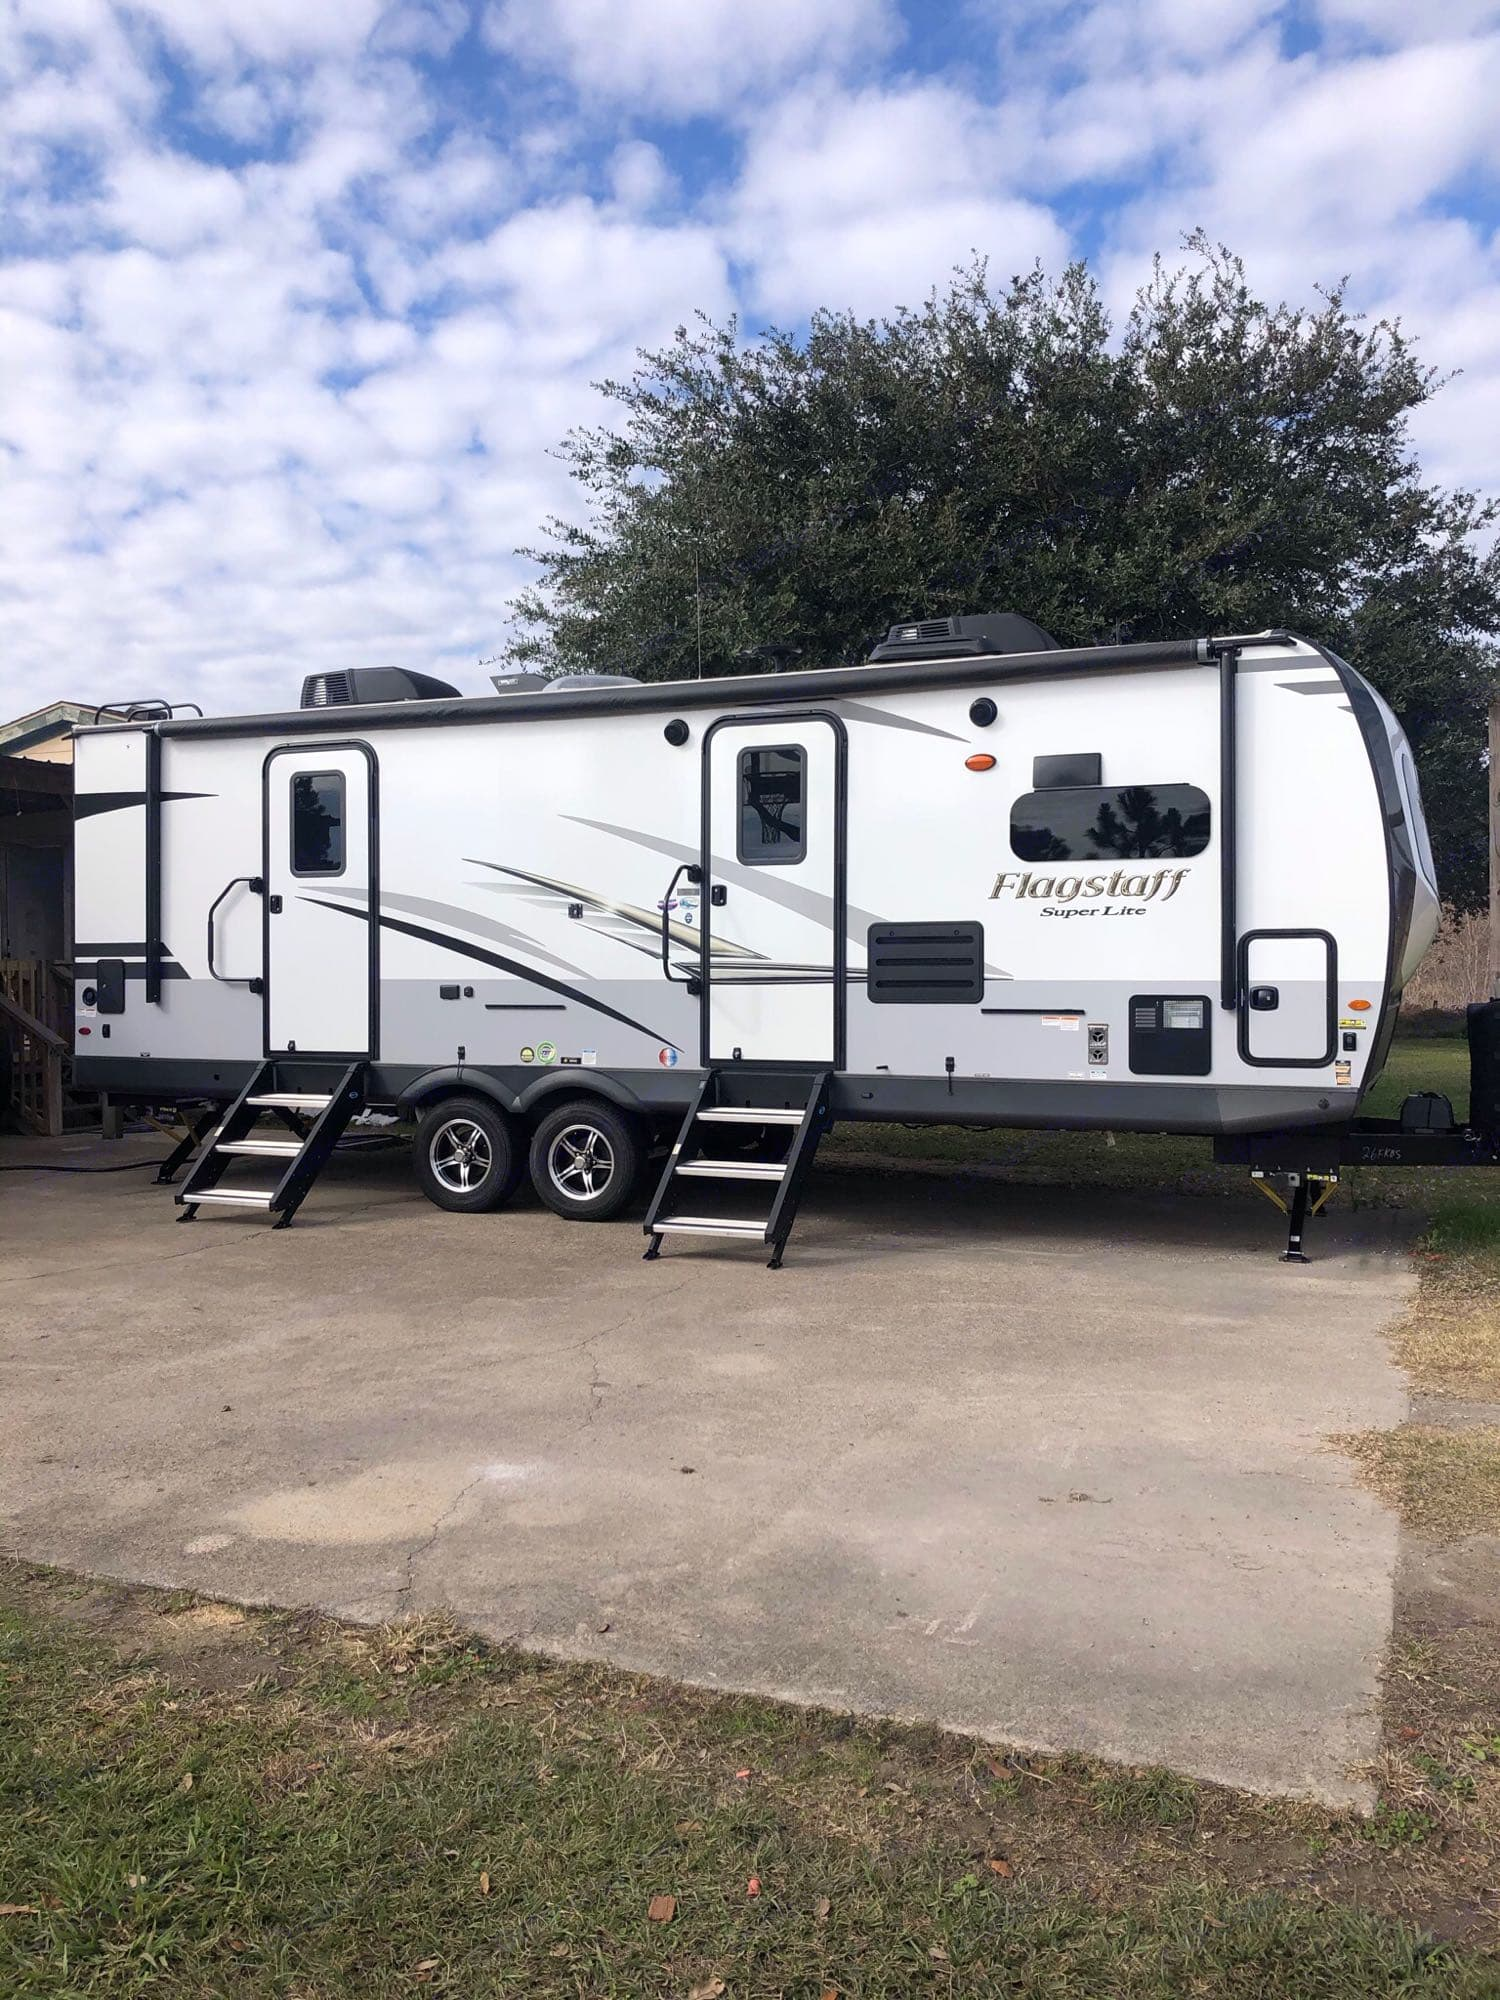 Front Without Awning. FLAGSTAFF SUPER LITE 2021